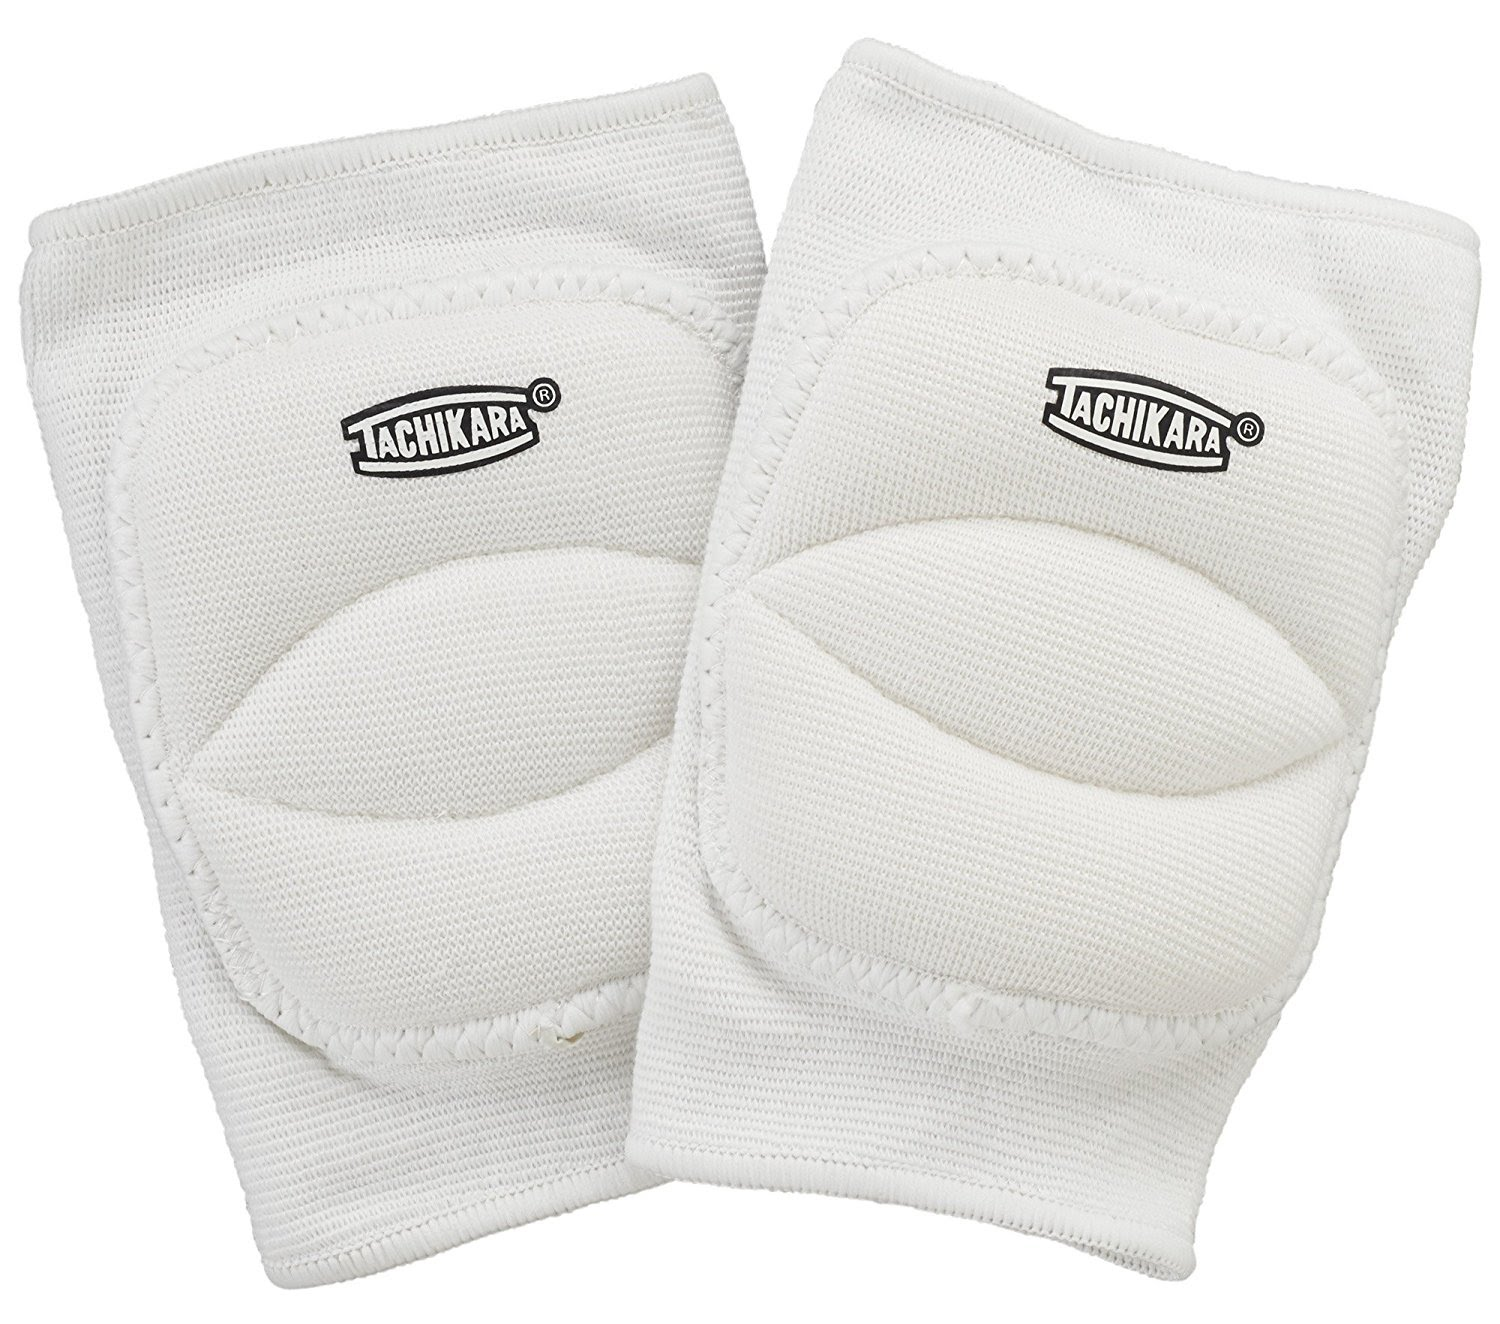 Tachikara Volleyball Knee Pads, One Size Fits All, White - Pair - 61-828